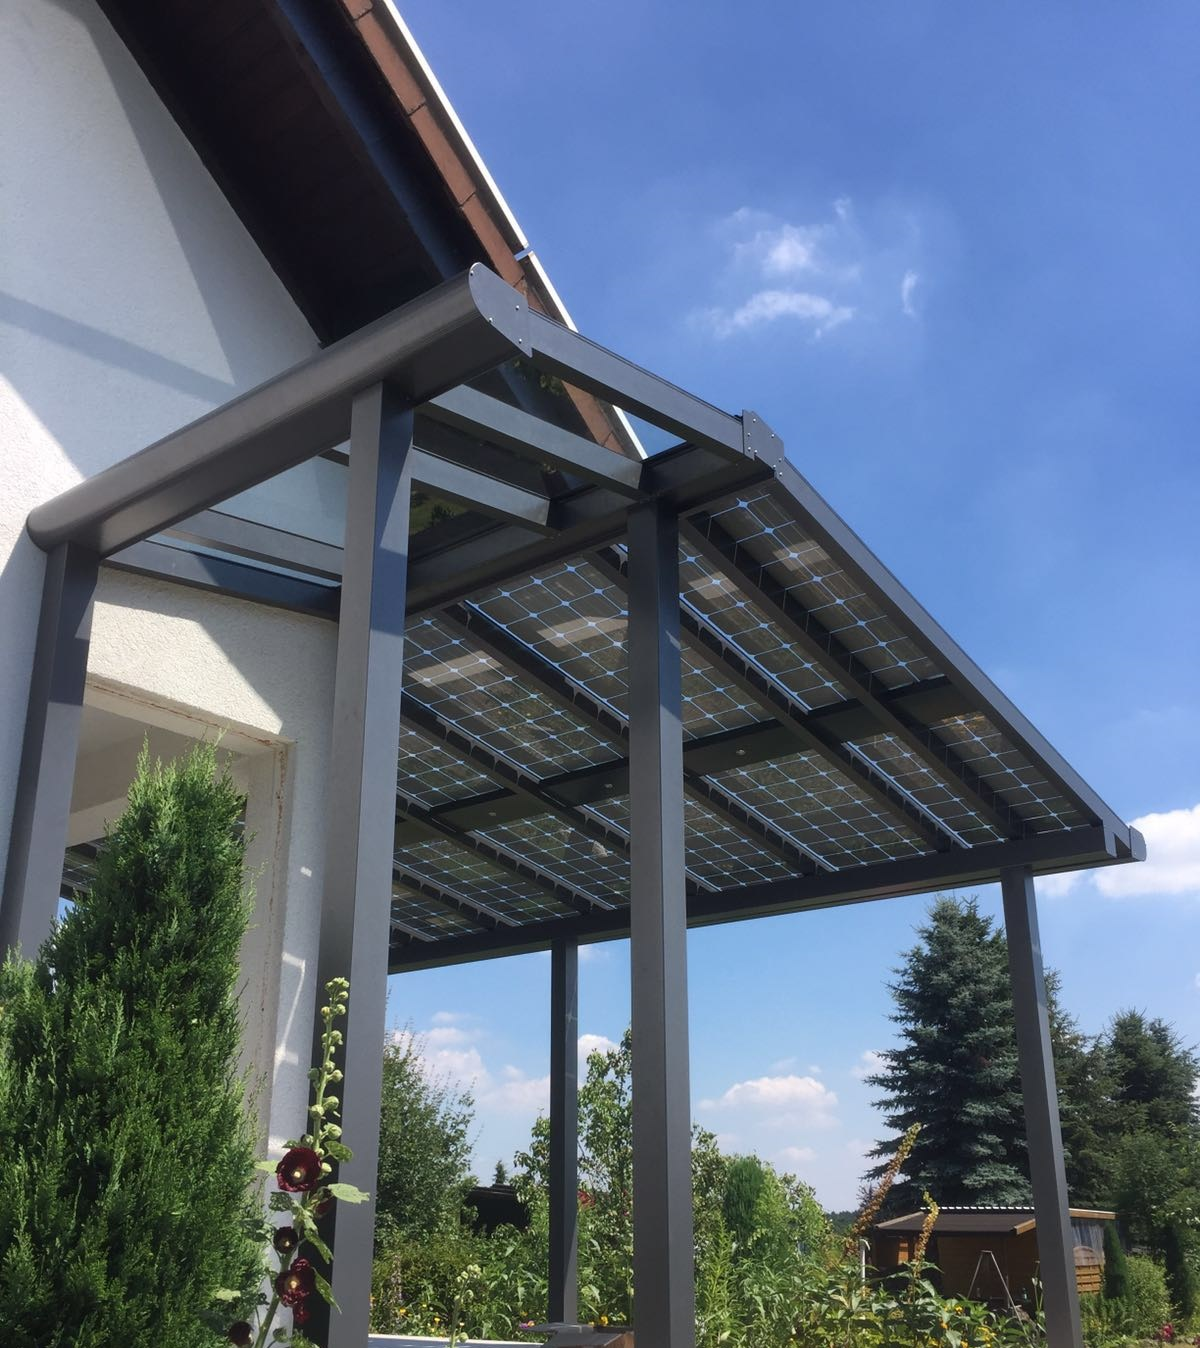 Conservatory with solar